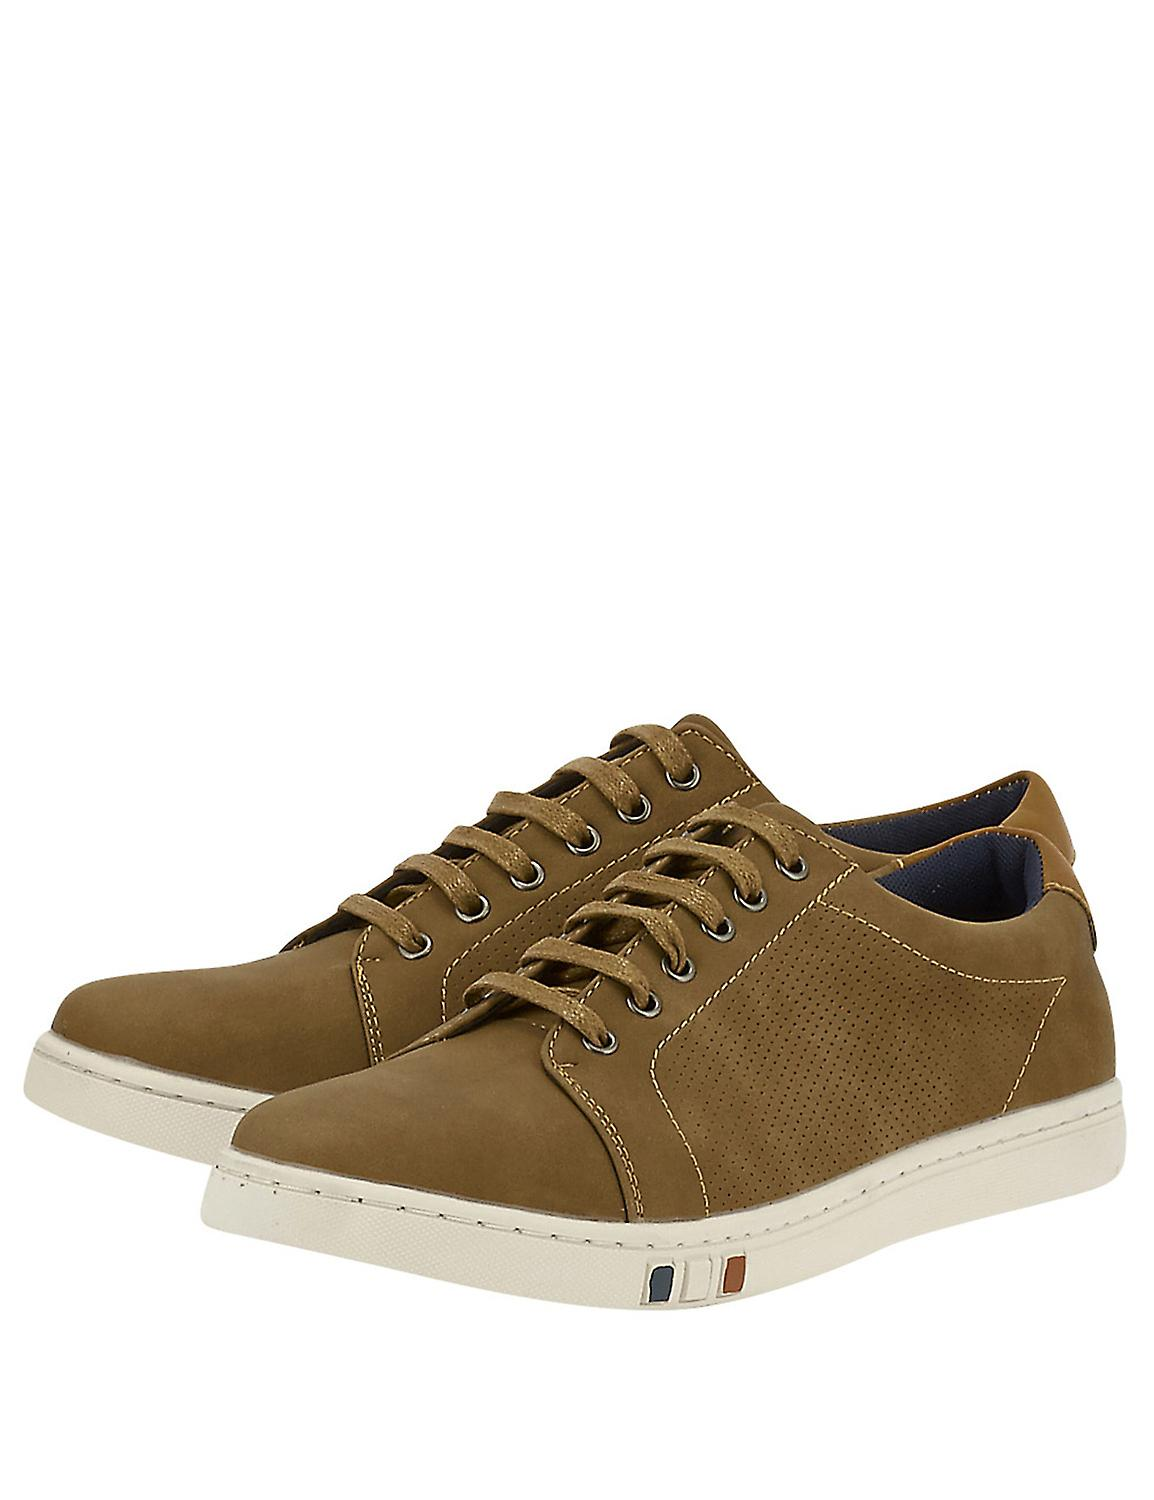 Bitter & Sweet Men's Low Cut Sneakers